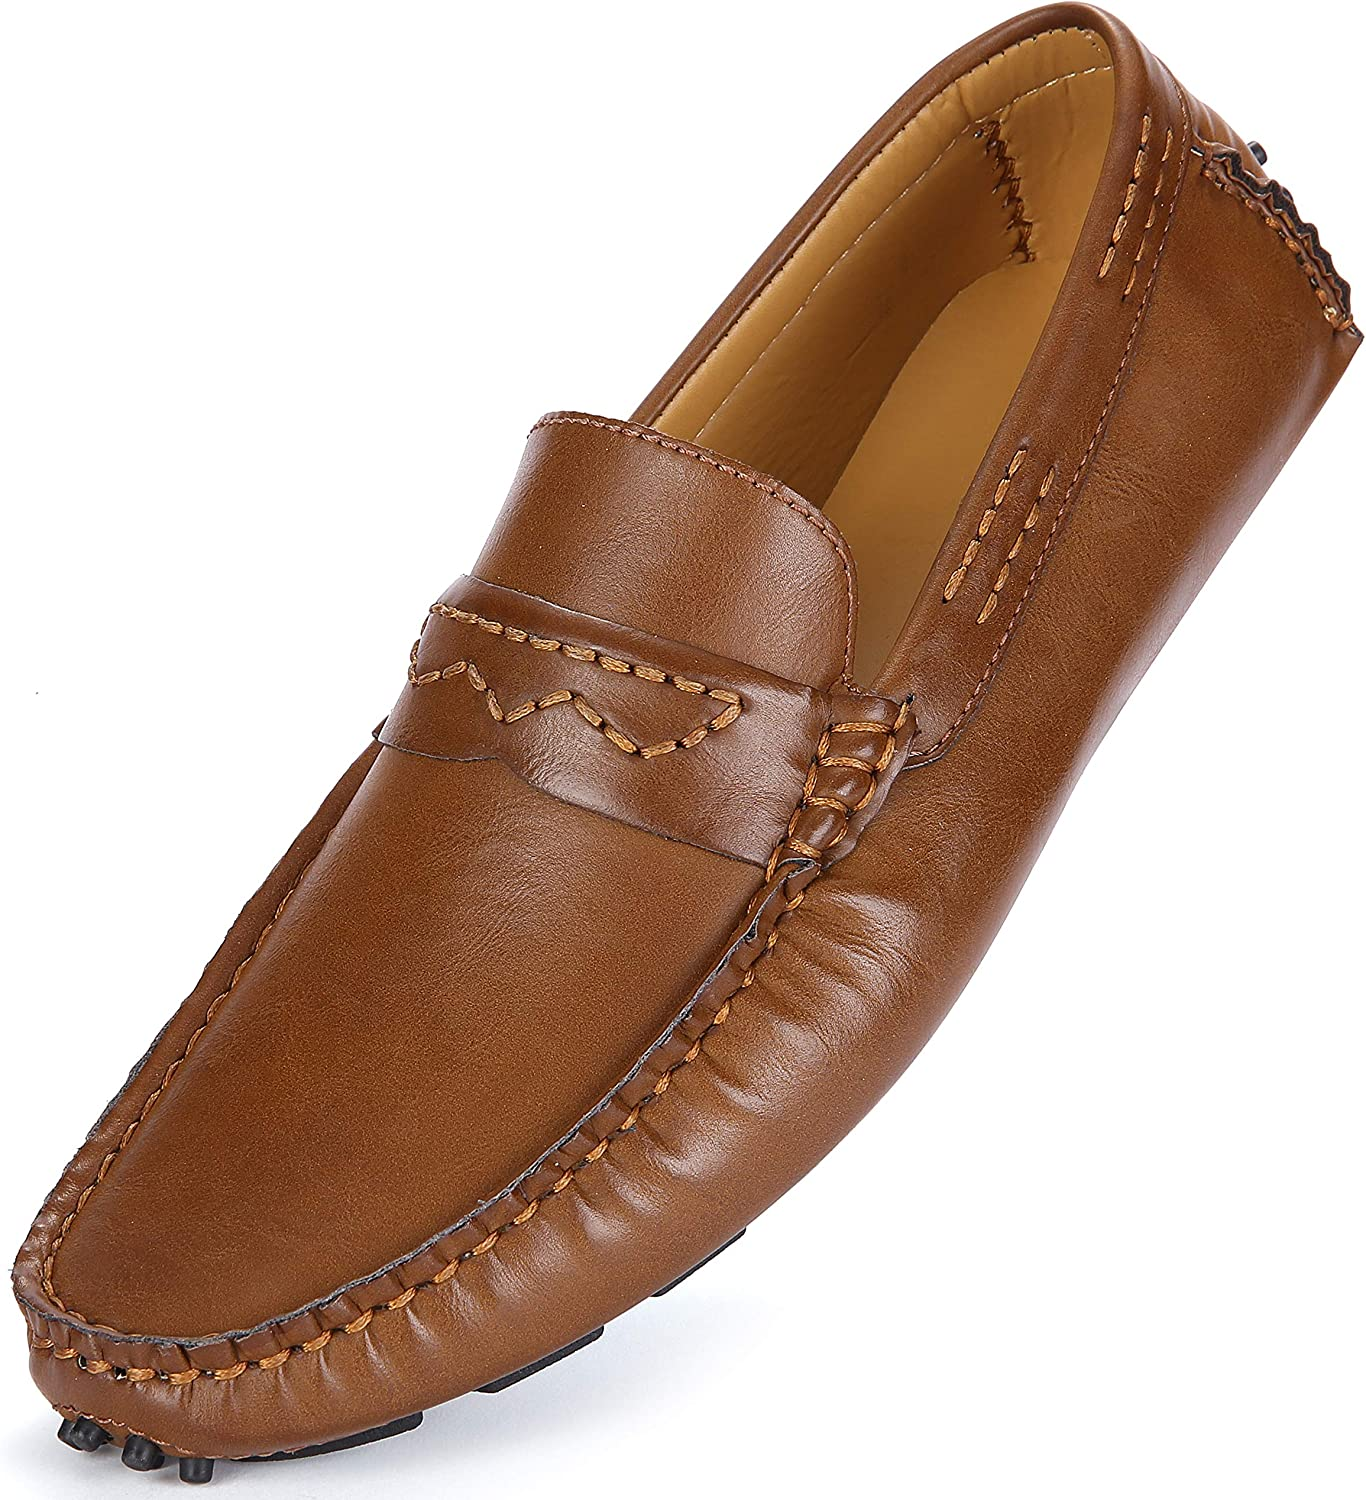 Marino Mens Penny Loafers - Comfortable and Lightweight Dress Casual Loafers - Slip-on Driving Shoes with Gift Shoe Bag